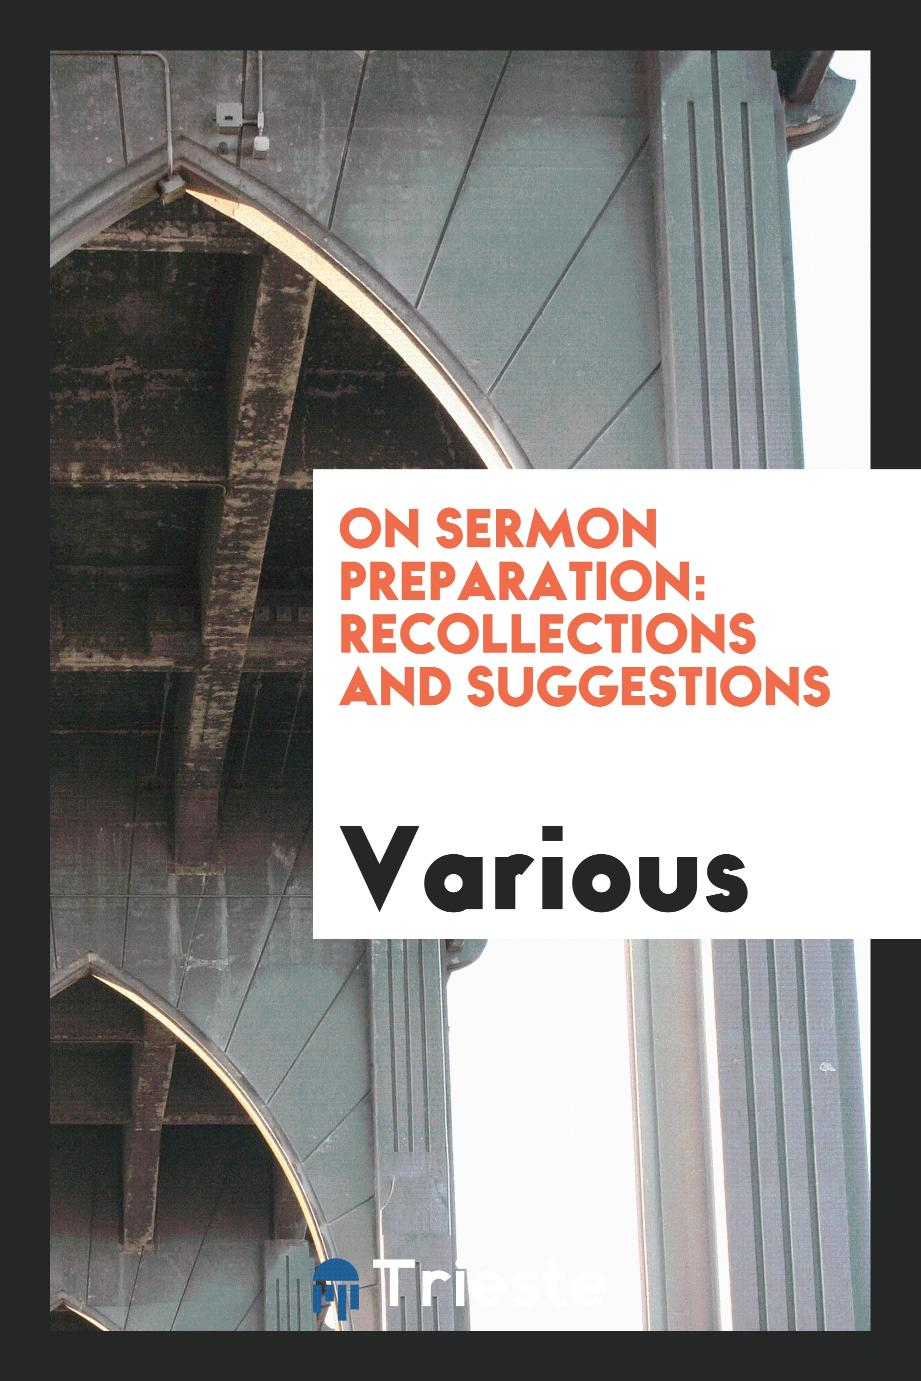 On sermon preparation: recollections and suggestions